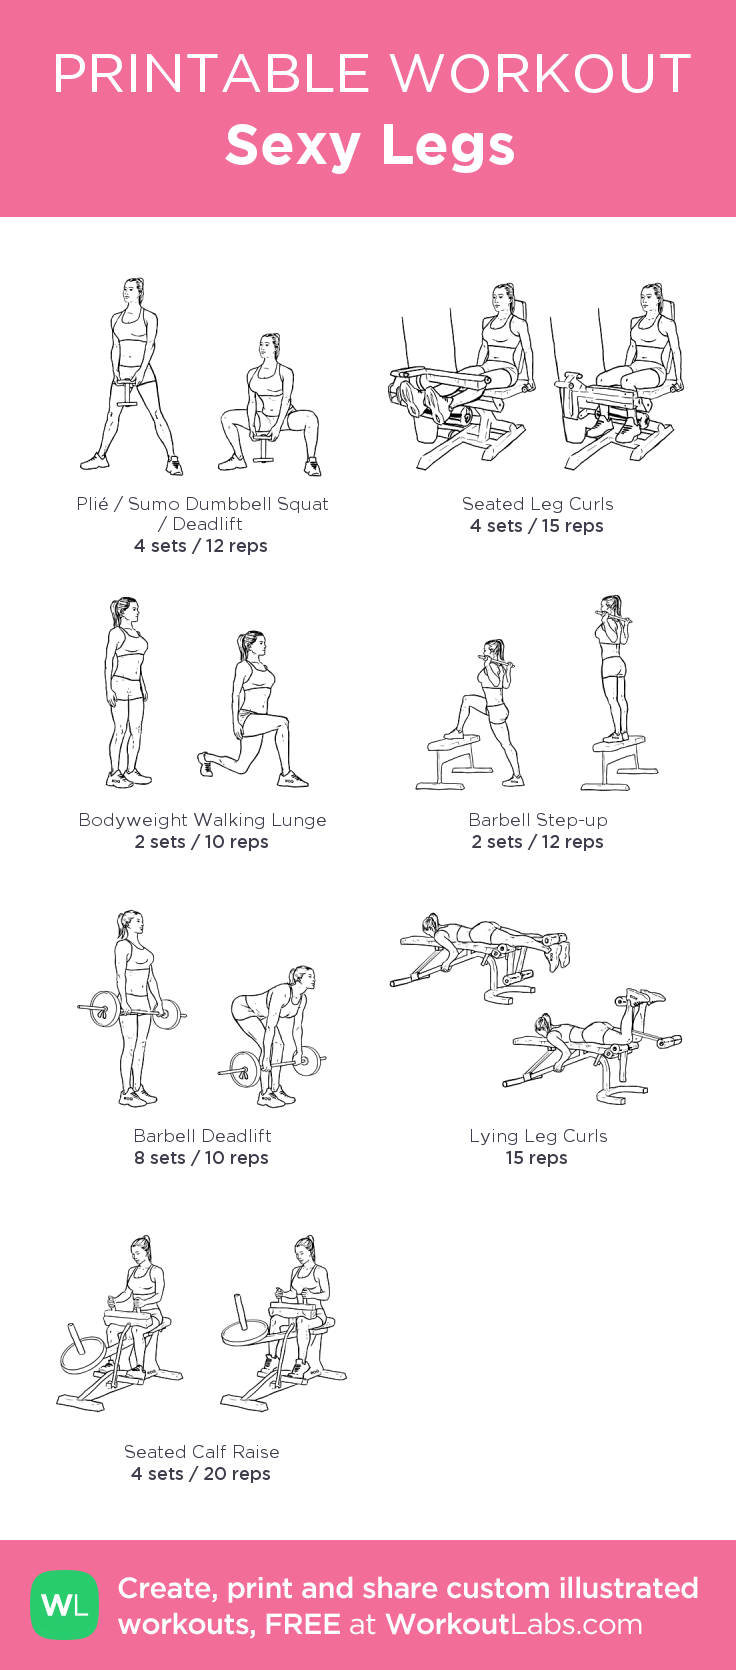 Sexy Legs: my custom printable workout by @WorkoutLabs